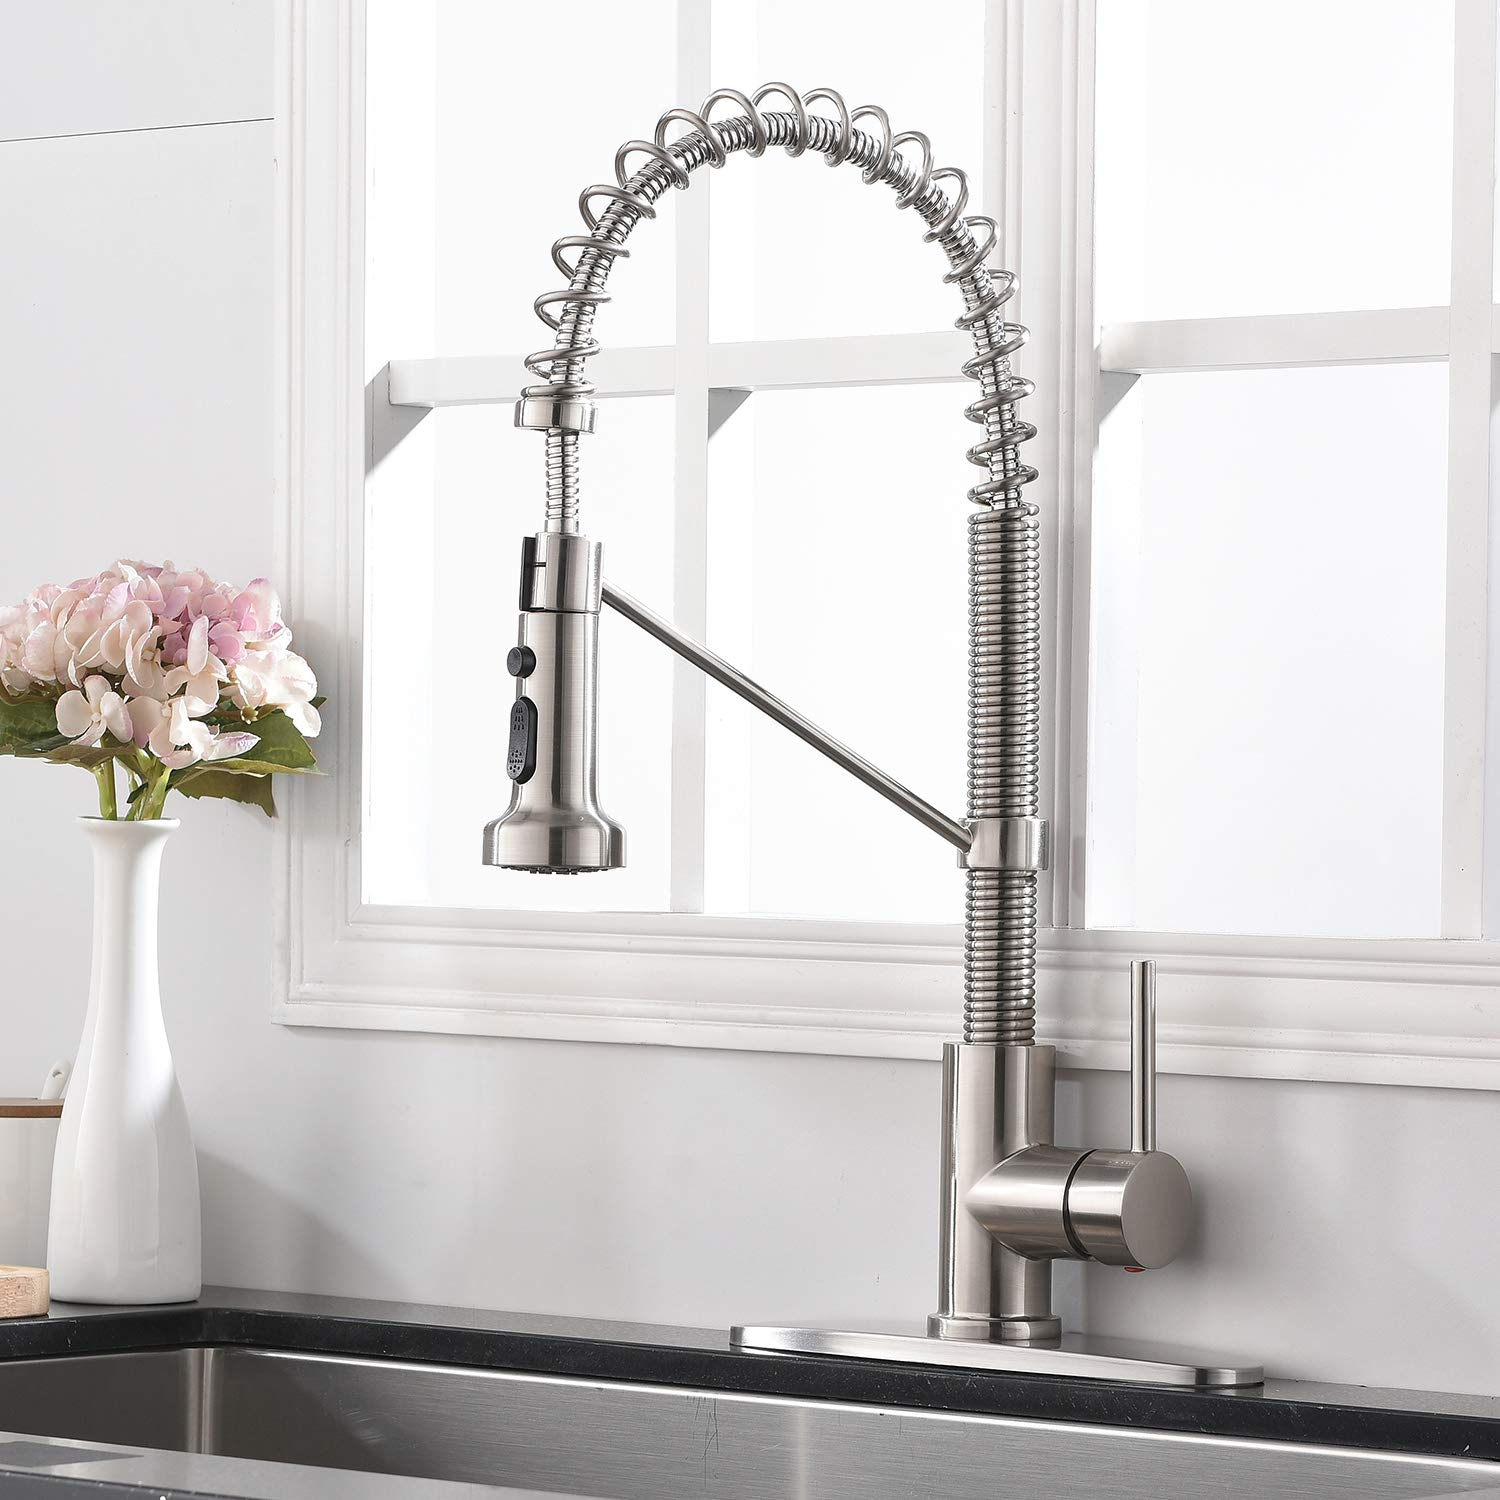 Ufaucet Modern Commercial Lead Free Stainless Steel Single Handle Pull Down Sprayer Spring Kitchen Faucet, Brushed Nickel Kitchen Sink Faucet with Deck Plate